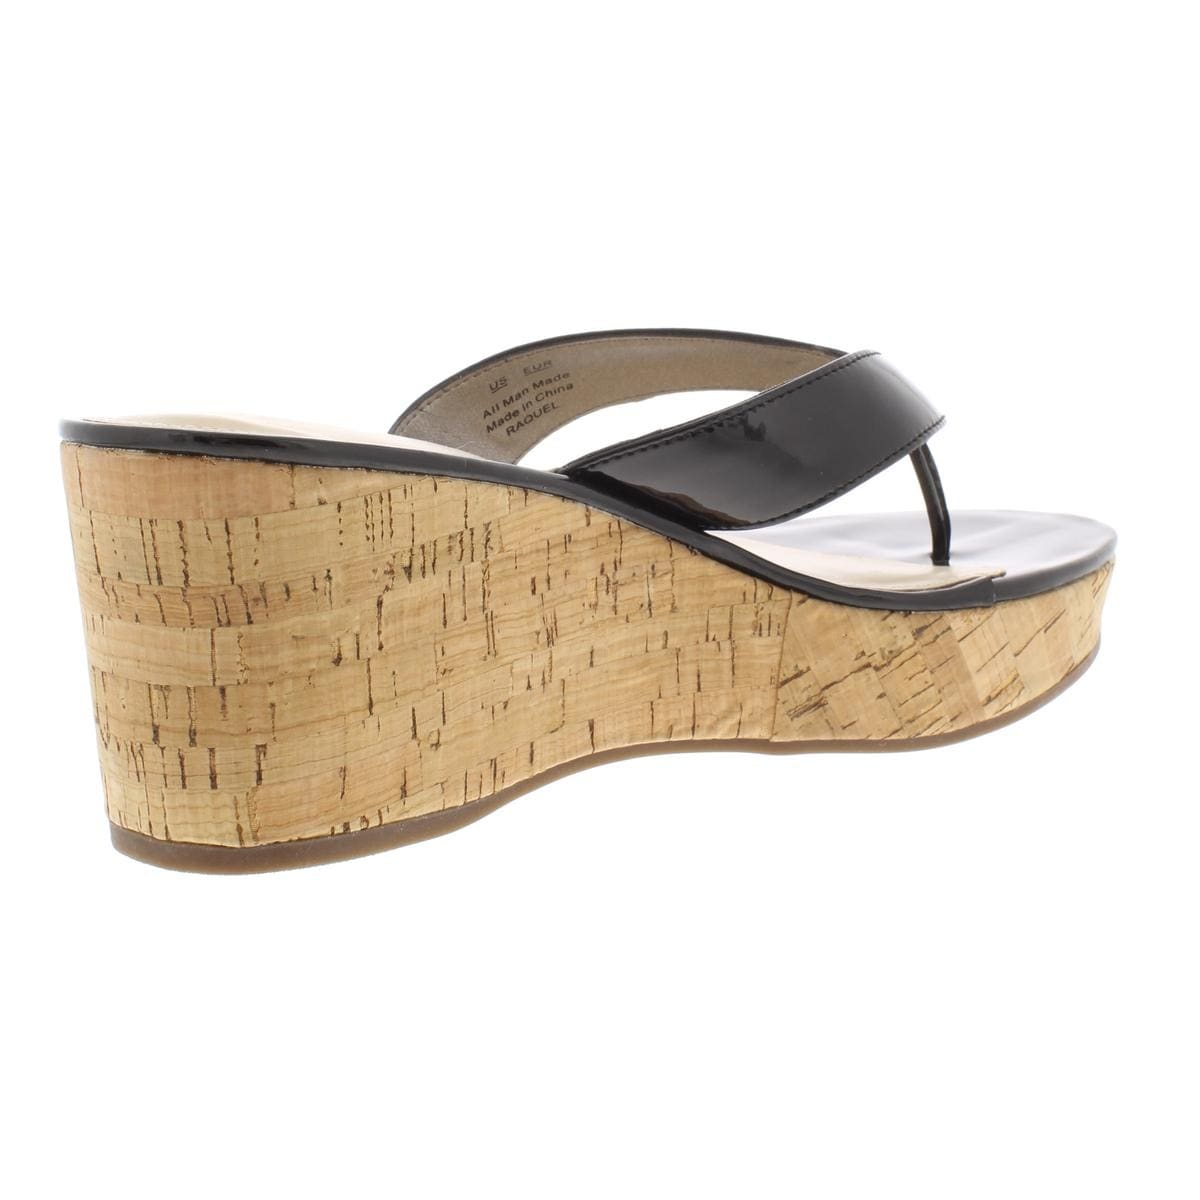 71221c9ba06a Shop Circus by Sam Edelman Womens Raquel Wedge Sandals Platform Cork - Free  Shipping On Orders Over  45 - Overstock - 27592867